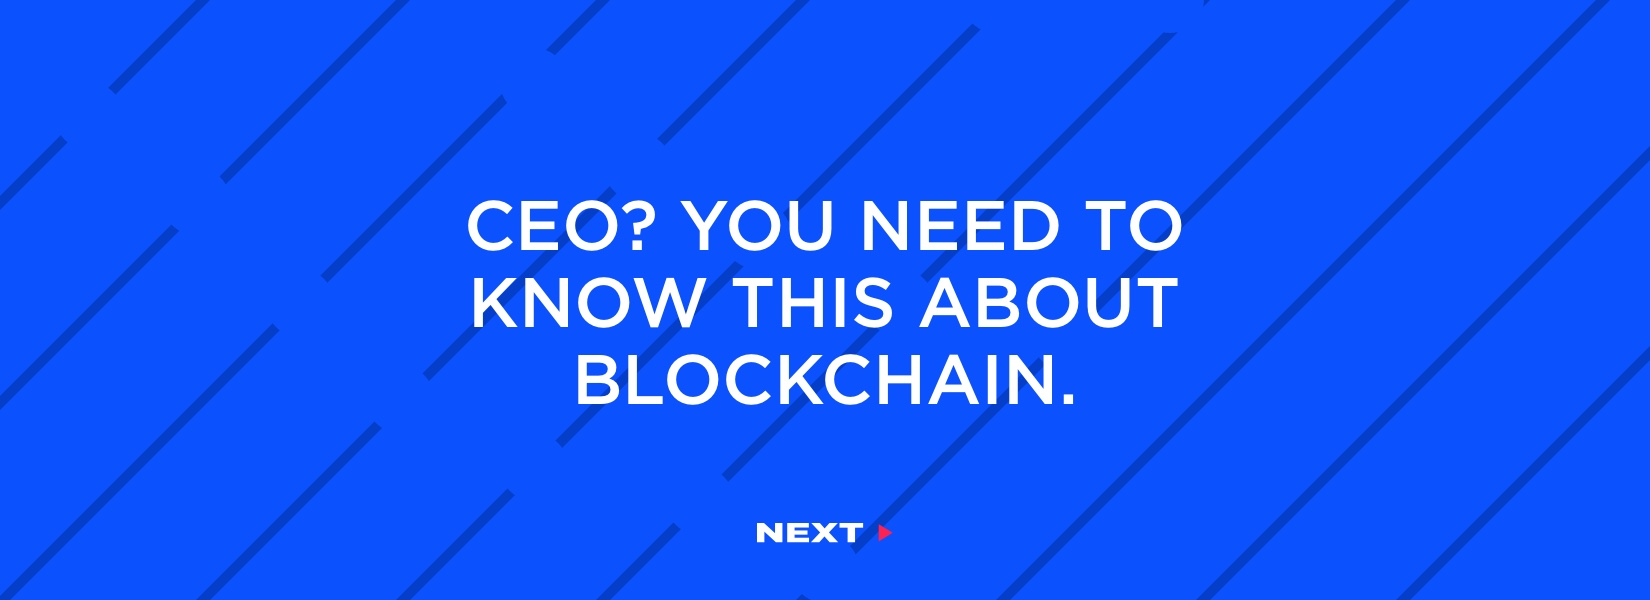 What you need to understand about blockchain as a CEO